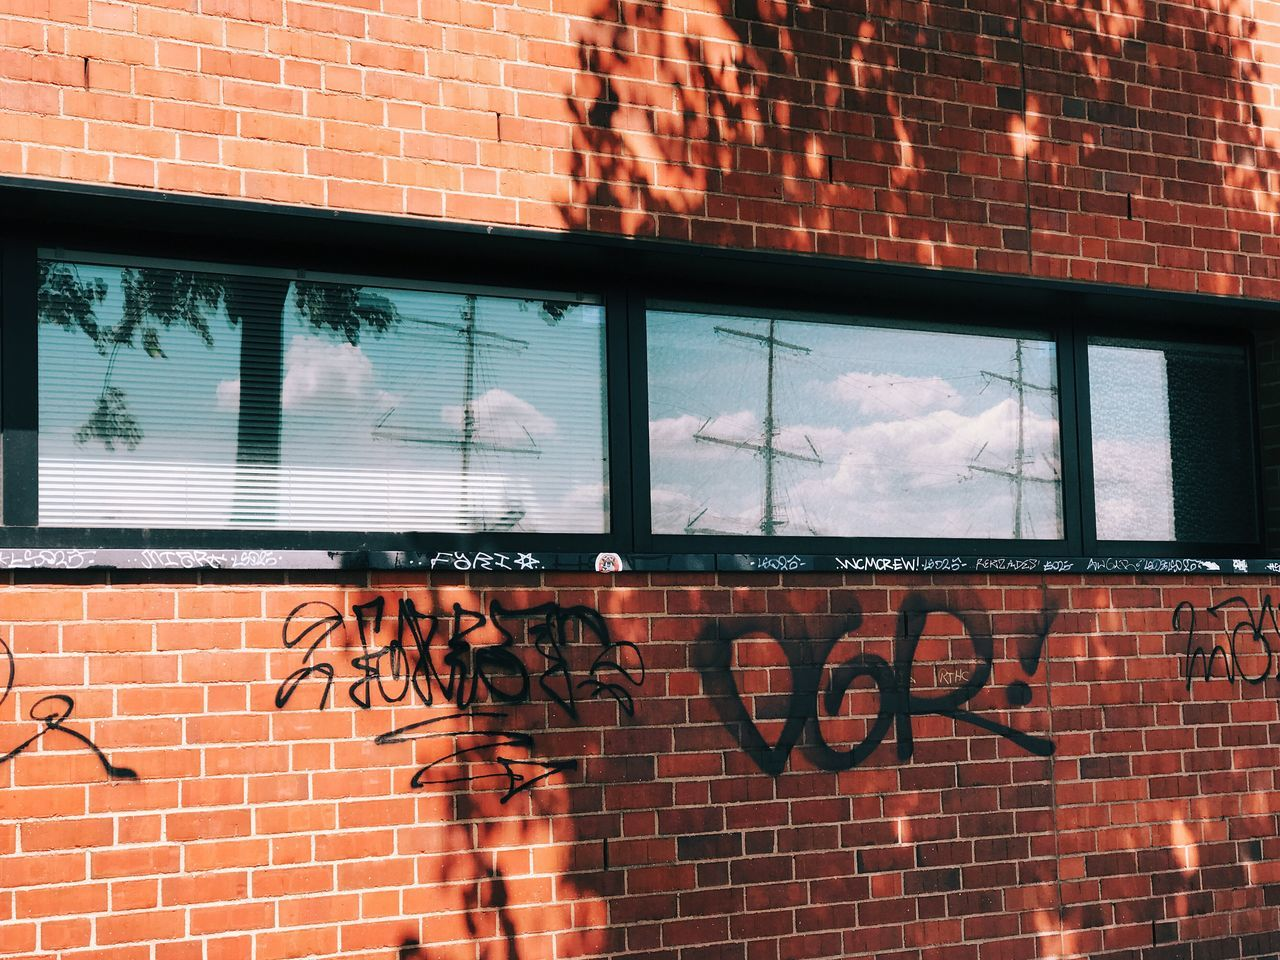 Brick Wall Brick Window Text Architecture Day Built Structure Building Exterior Outdoors Communication No People Low Angle View City Reflection Windows Graffiti Tags